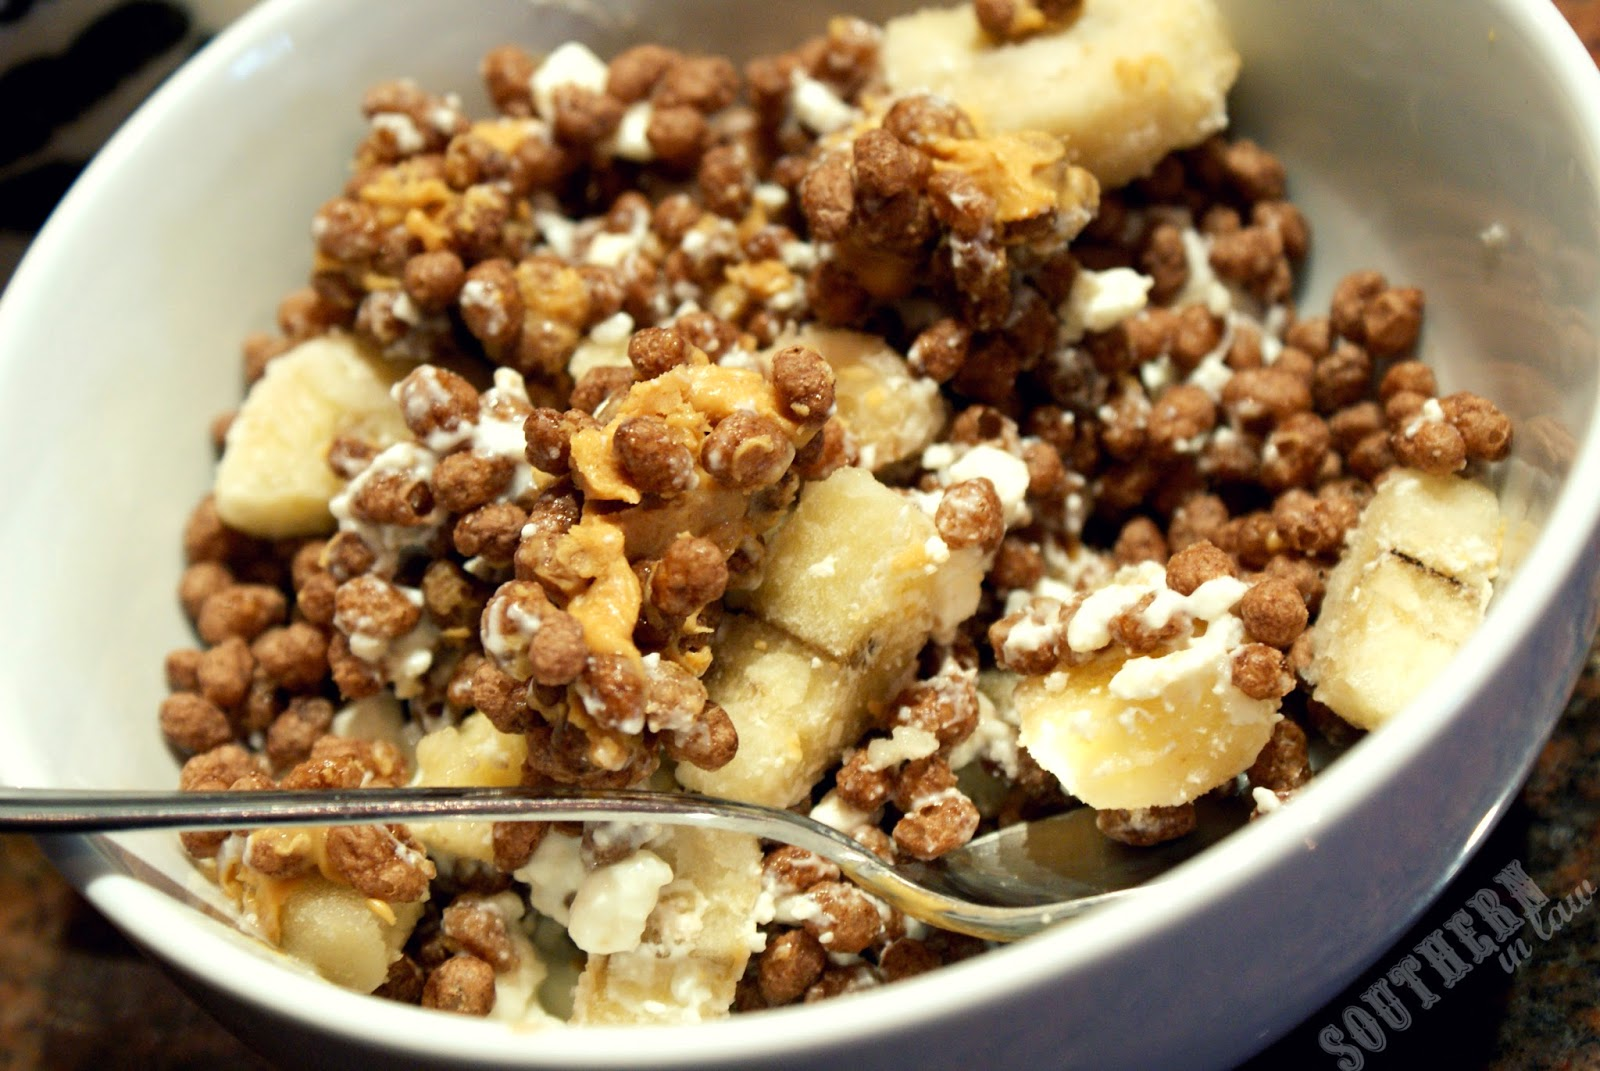 Cocoa Puffs Cereal Mess - Peanut Butter, Banana, Cottage Cheese  - Aldi Gluten Free Cereal Review